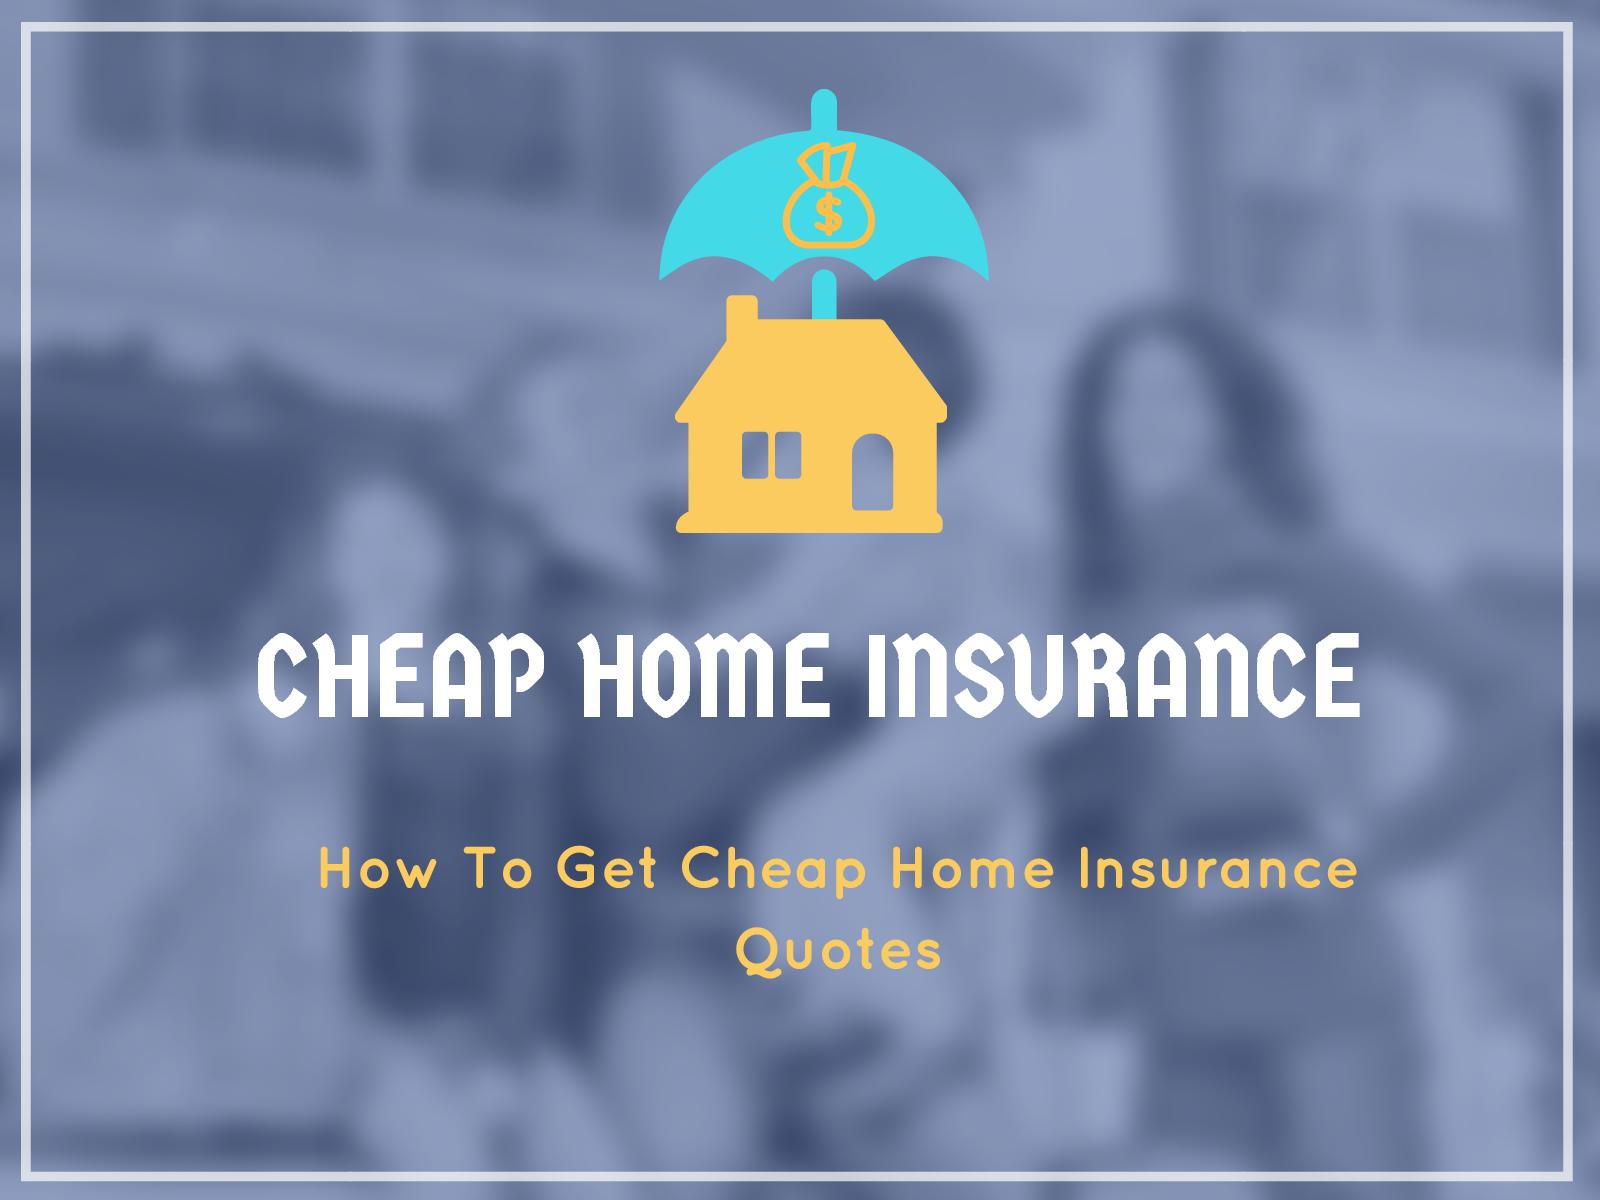 How To Get Cheap Home Insurance Quotes